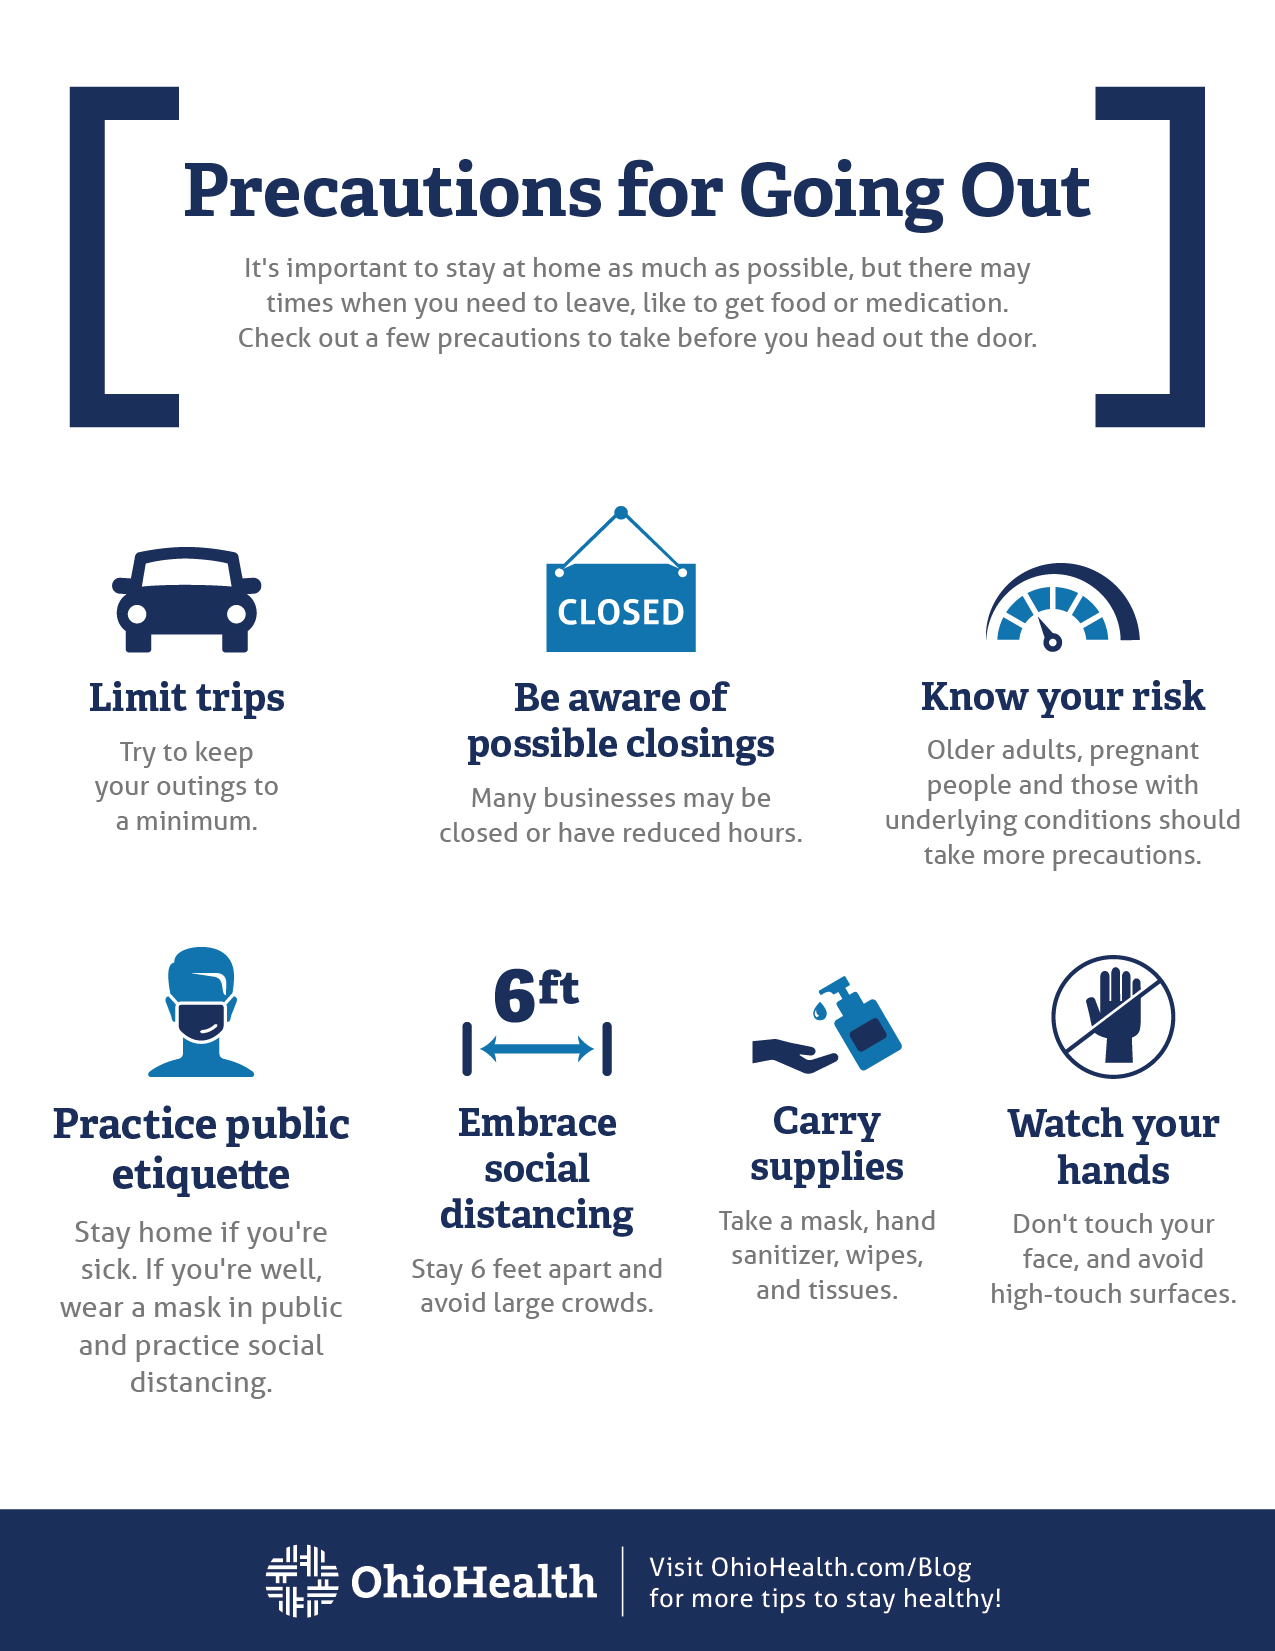 COVID-19 Precautions for Going Out